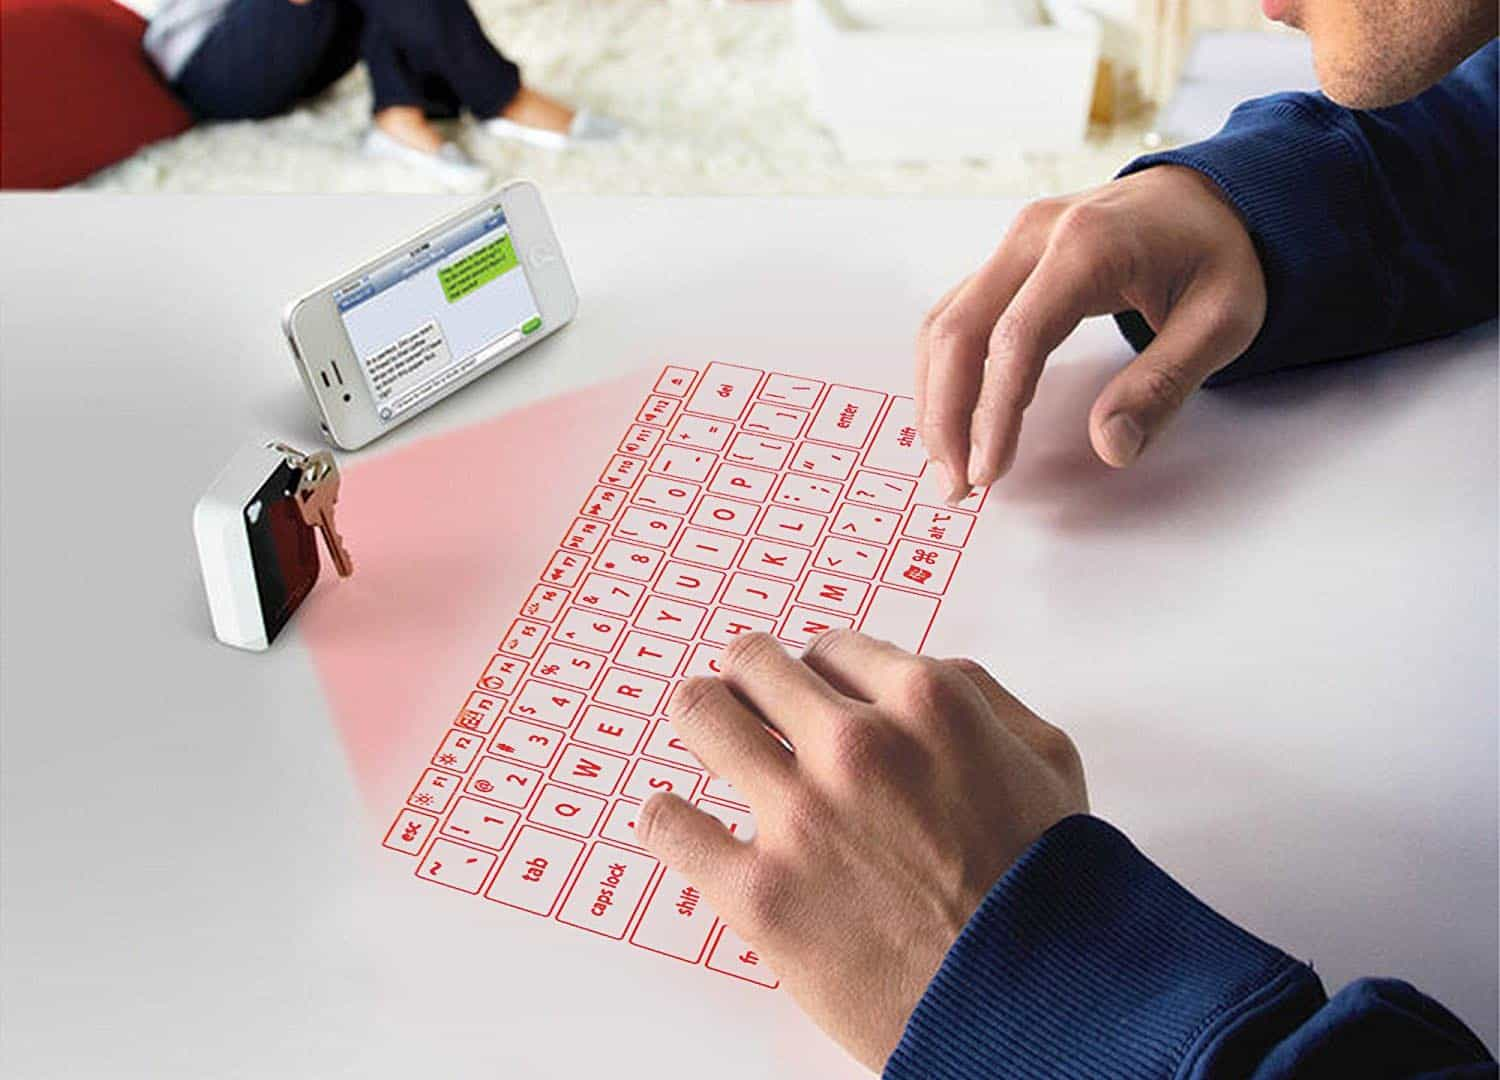 12 Cool And Creative Computer Keyboards To Level Up Any Workspace 2